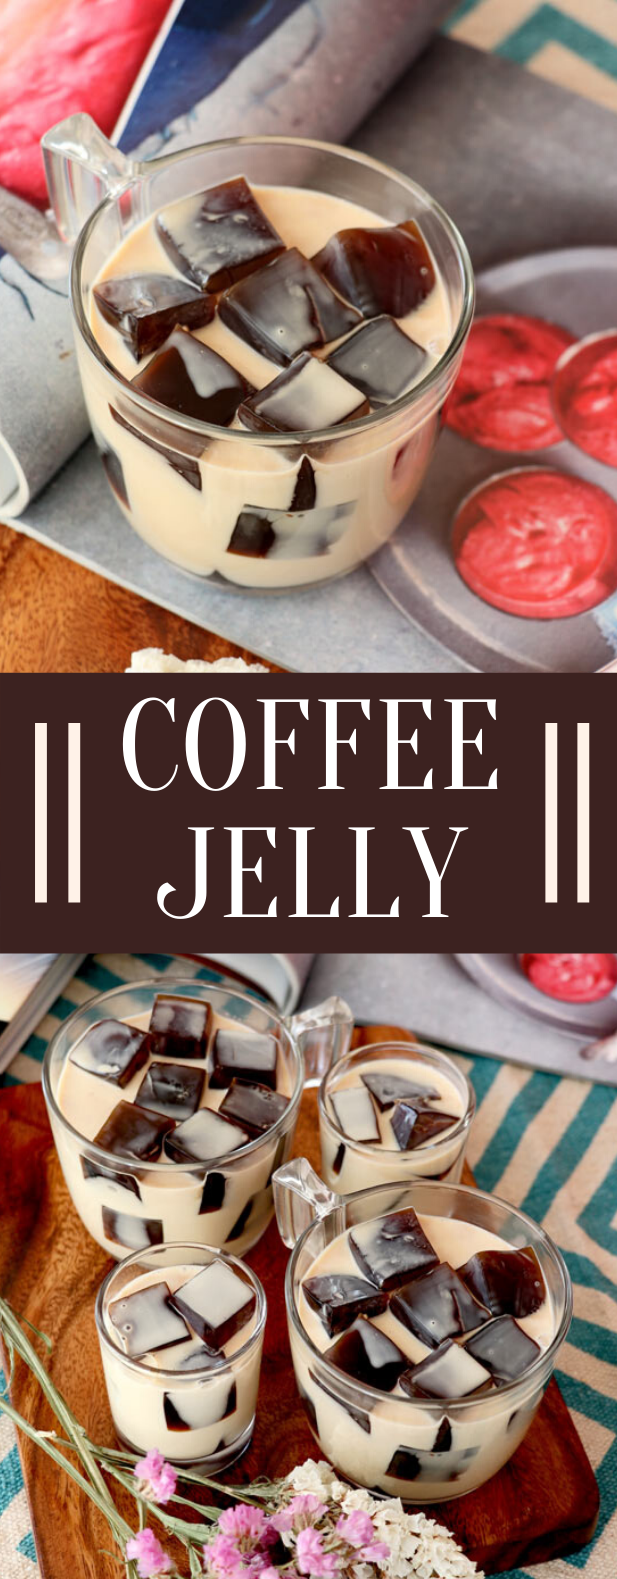 Coffee Jelly #drinks #desserts #sweets #coffee #jelly